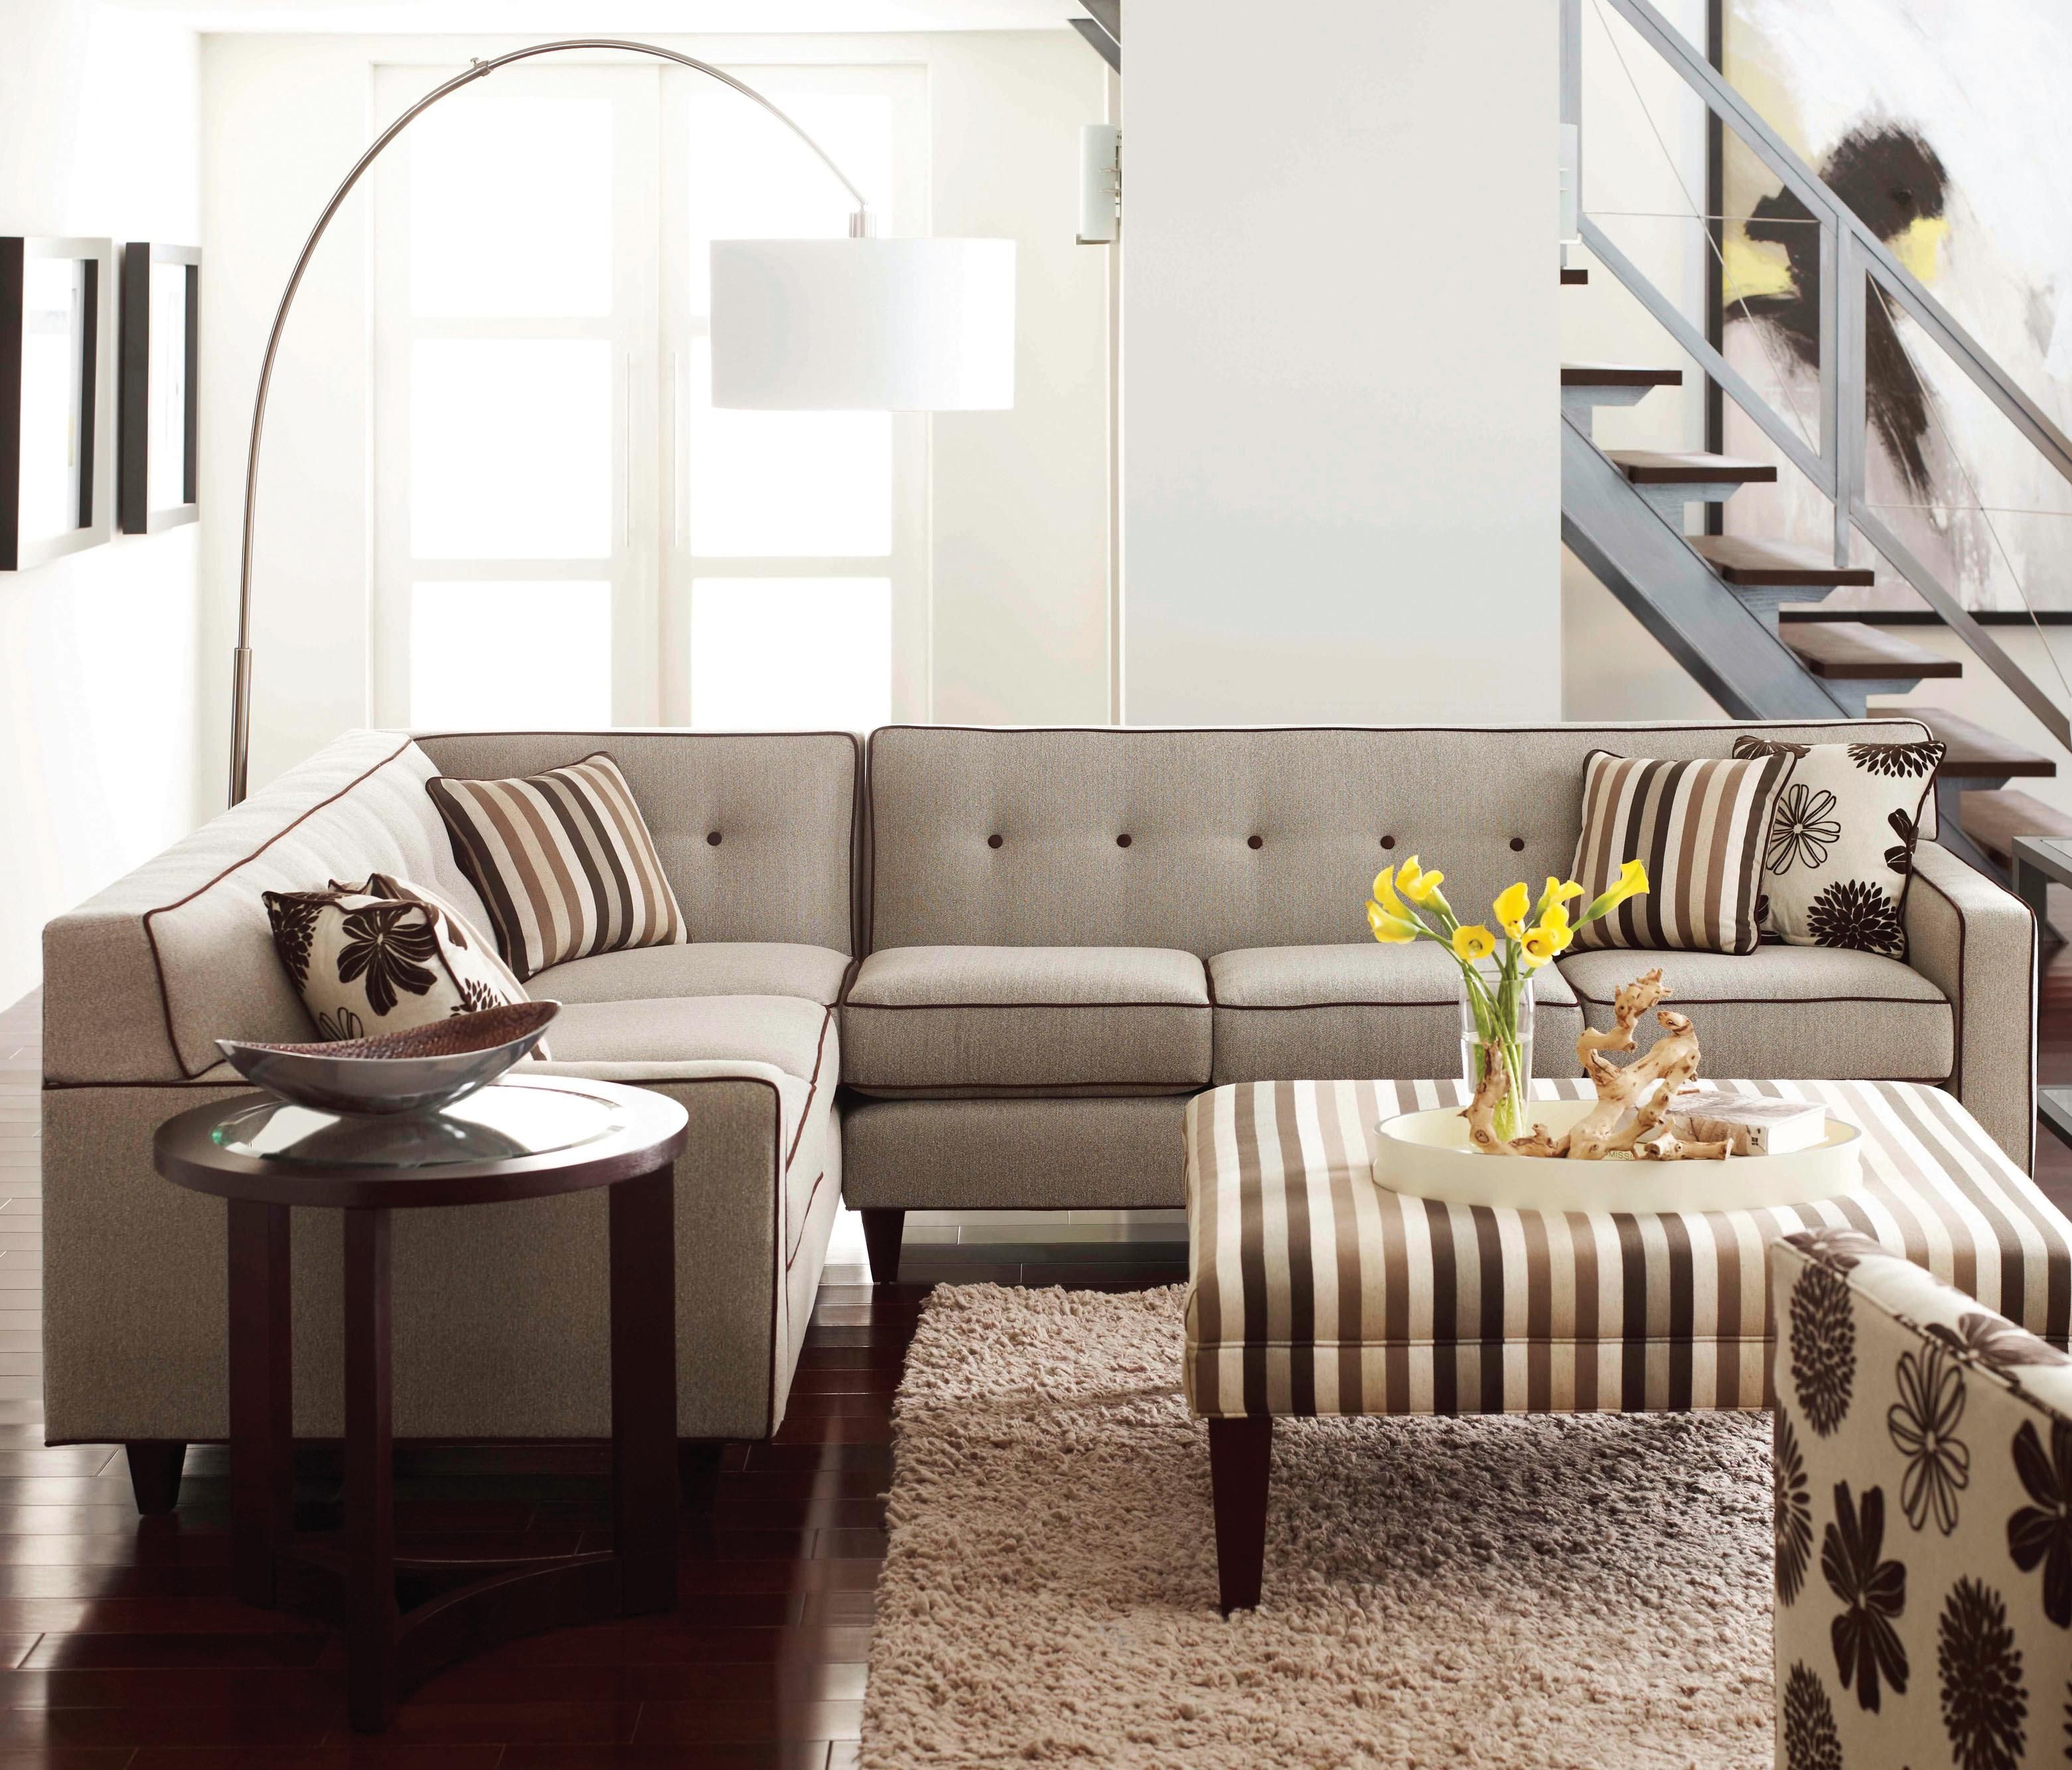 Dorset Corner Sectional With Wooden Legs By Rowe Ahfa Sofa Dealer Locator